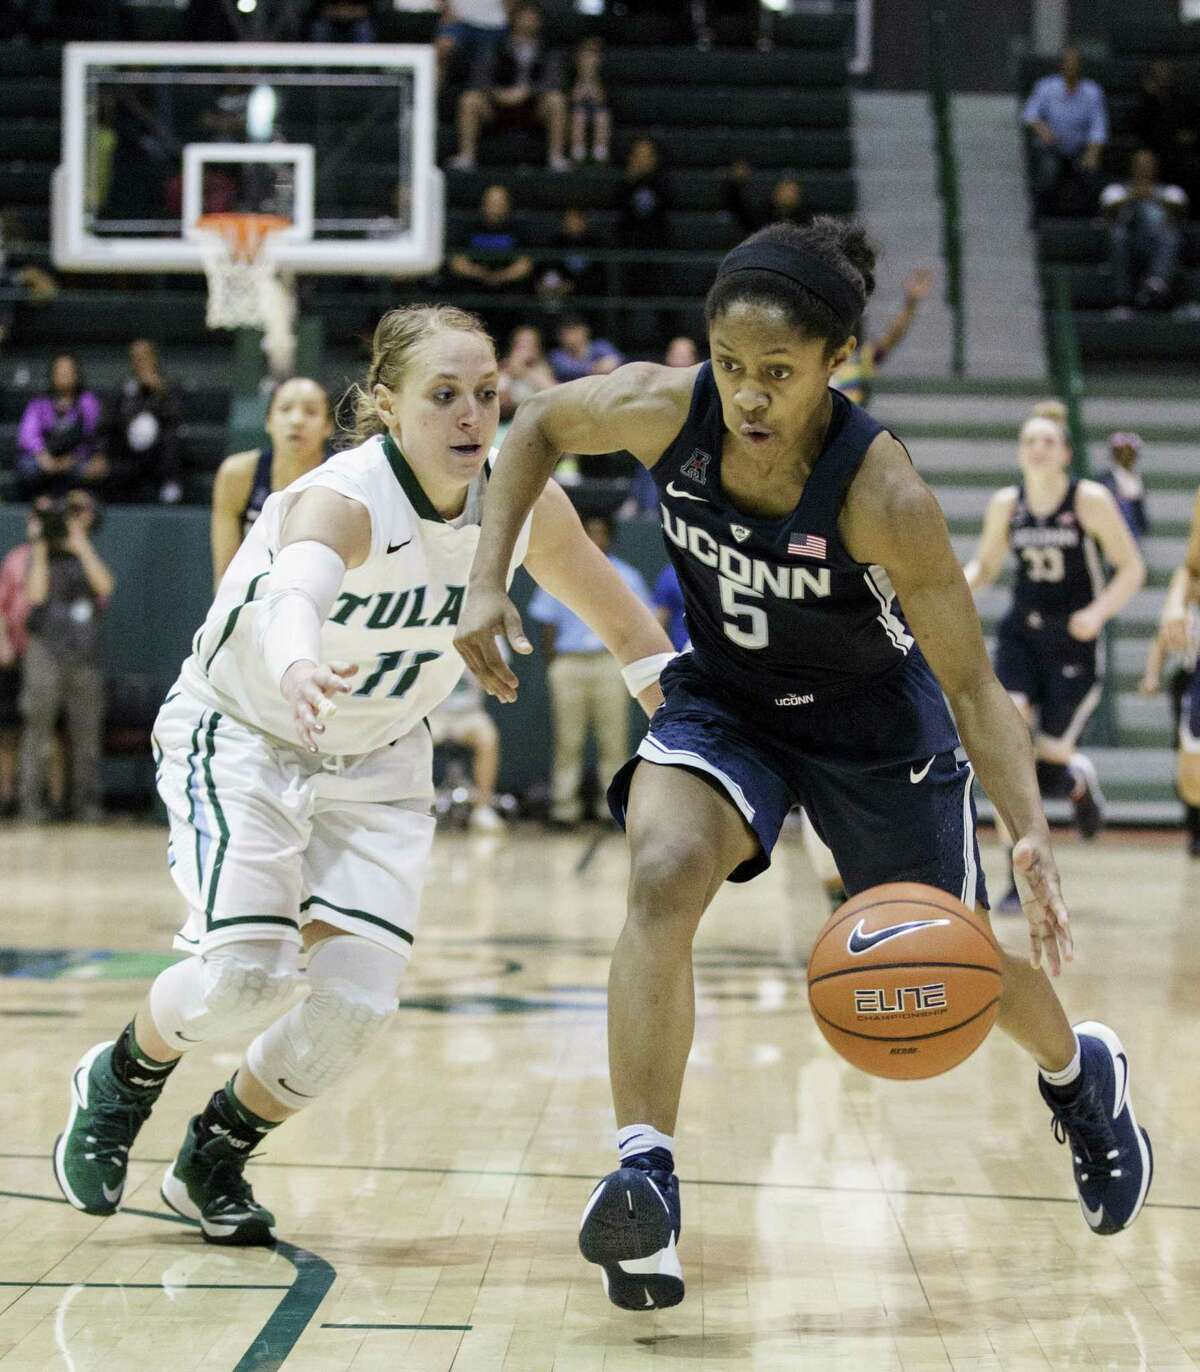 Tulane guard (11) runs after UConn guard Crystal Dangerfield drives on Tulane's Leslie Vorpahl during a Feb. 18 game in New Orleans.